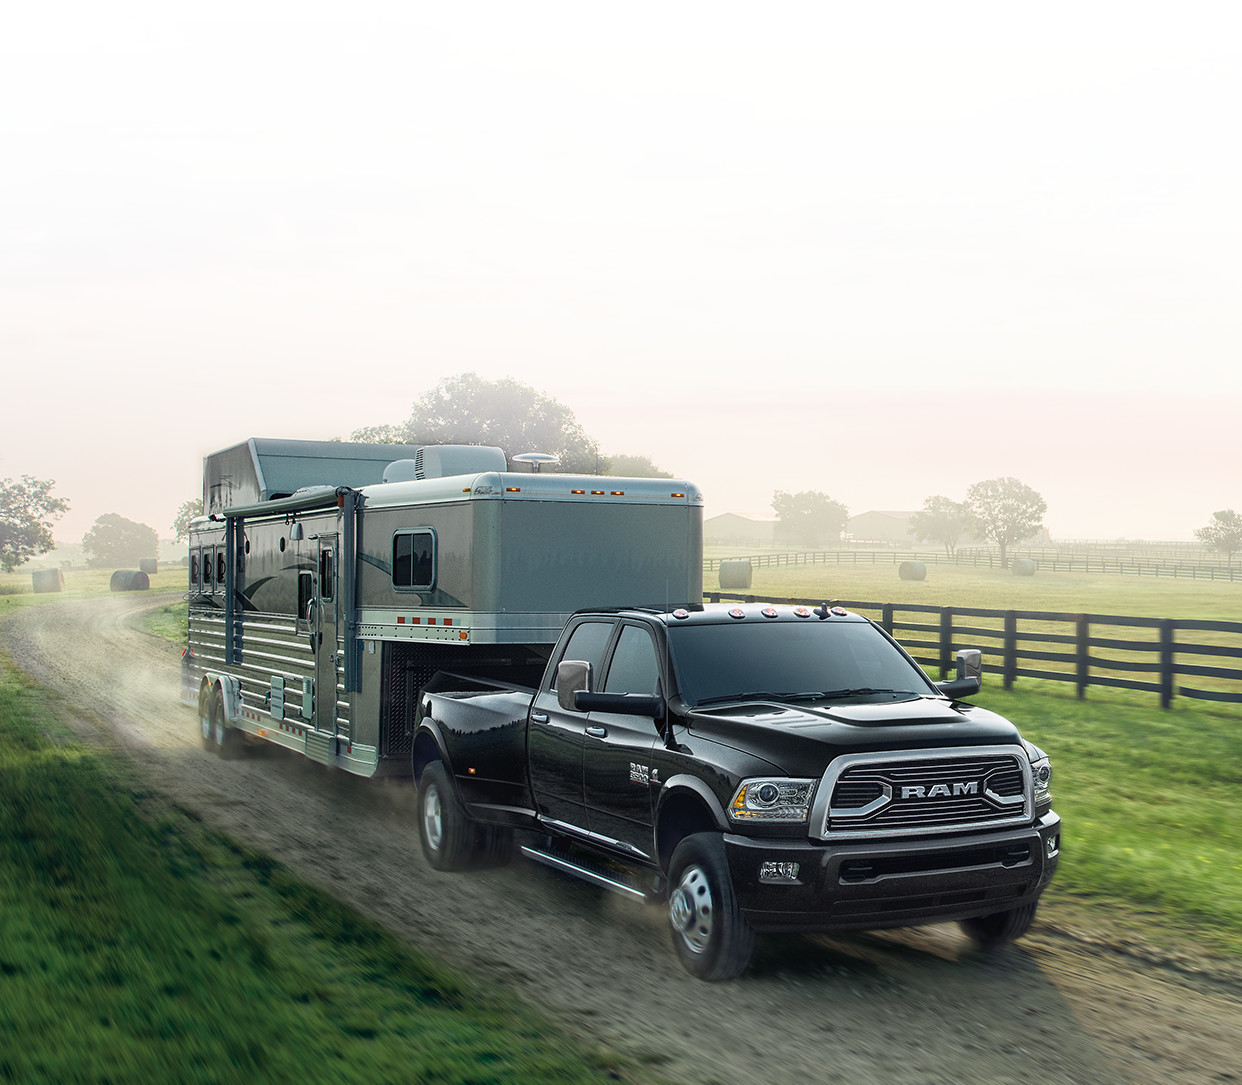 2018 RAM 3500 truck towing trailer